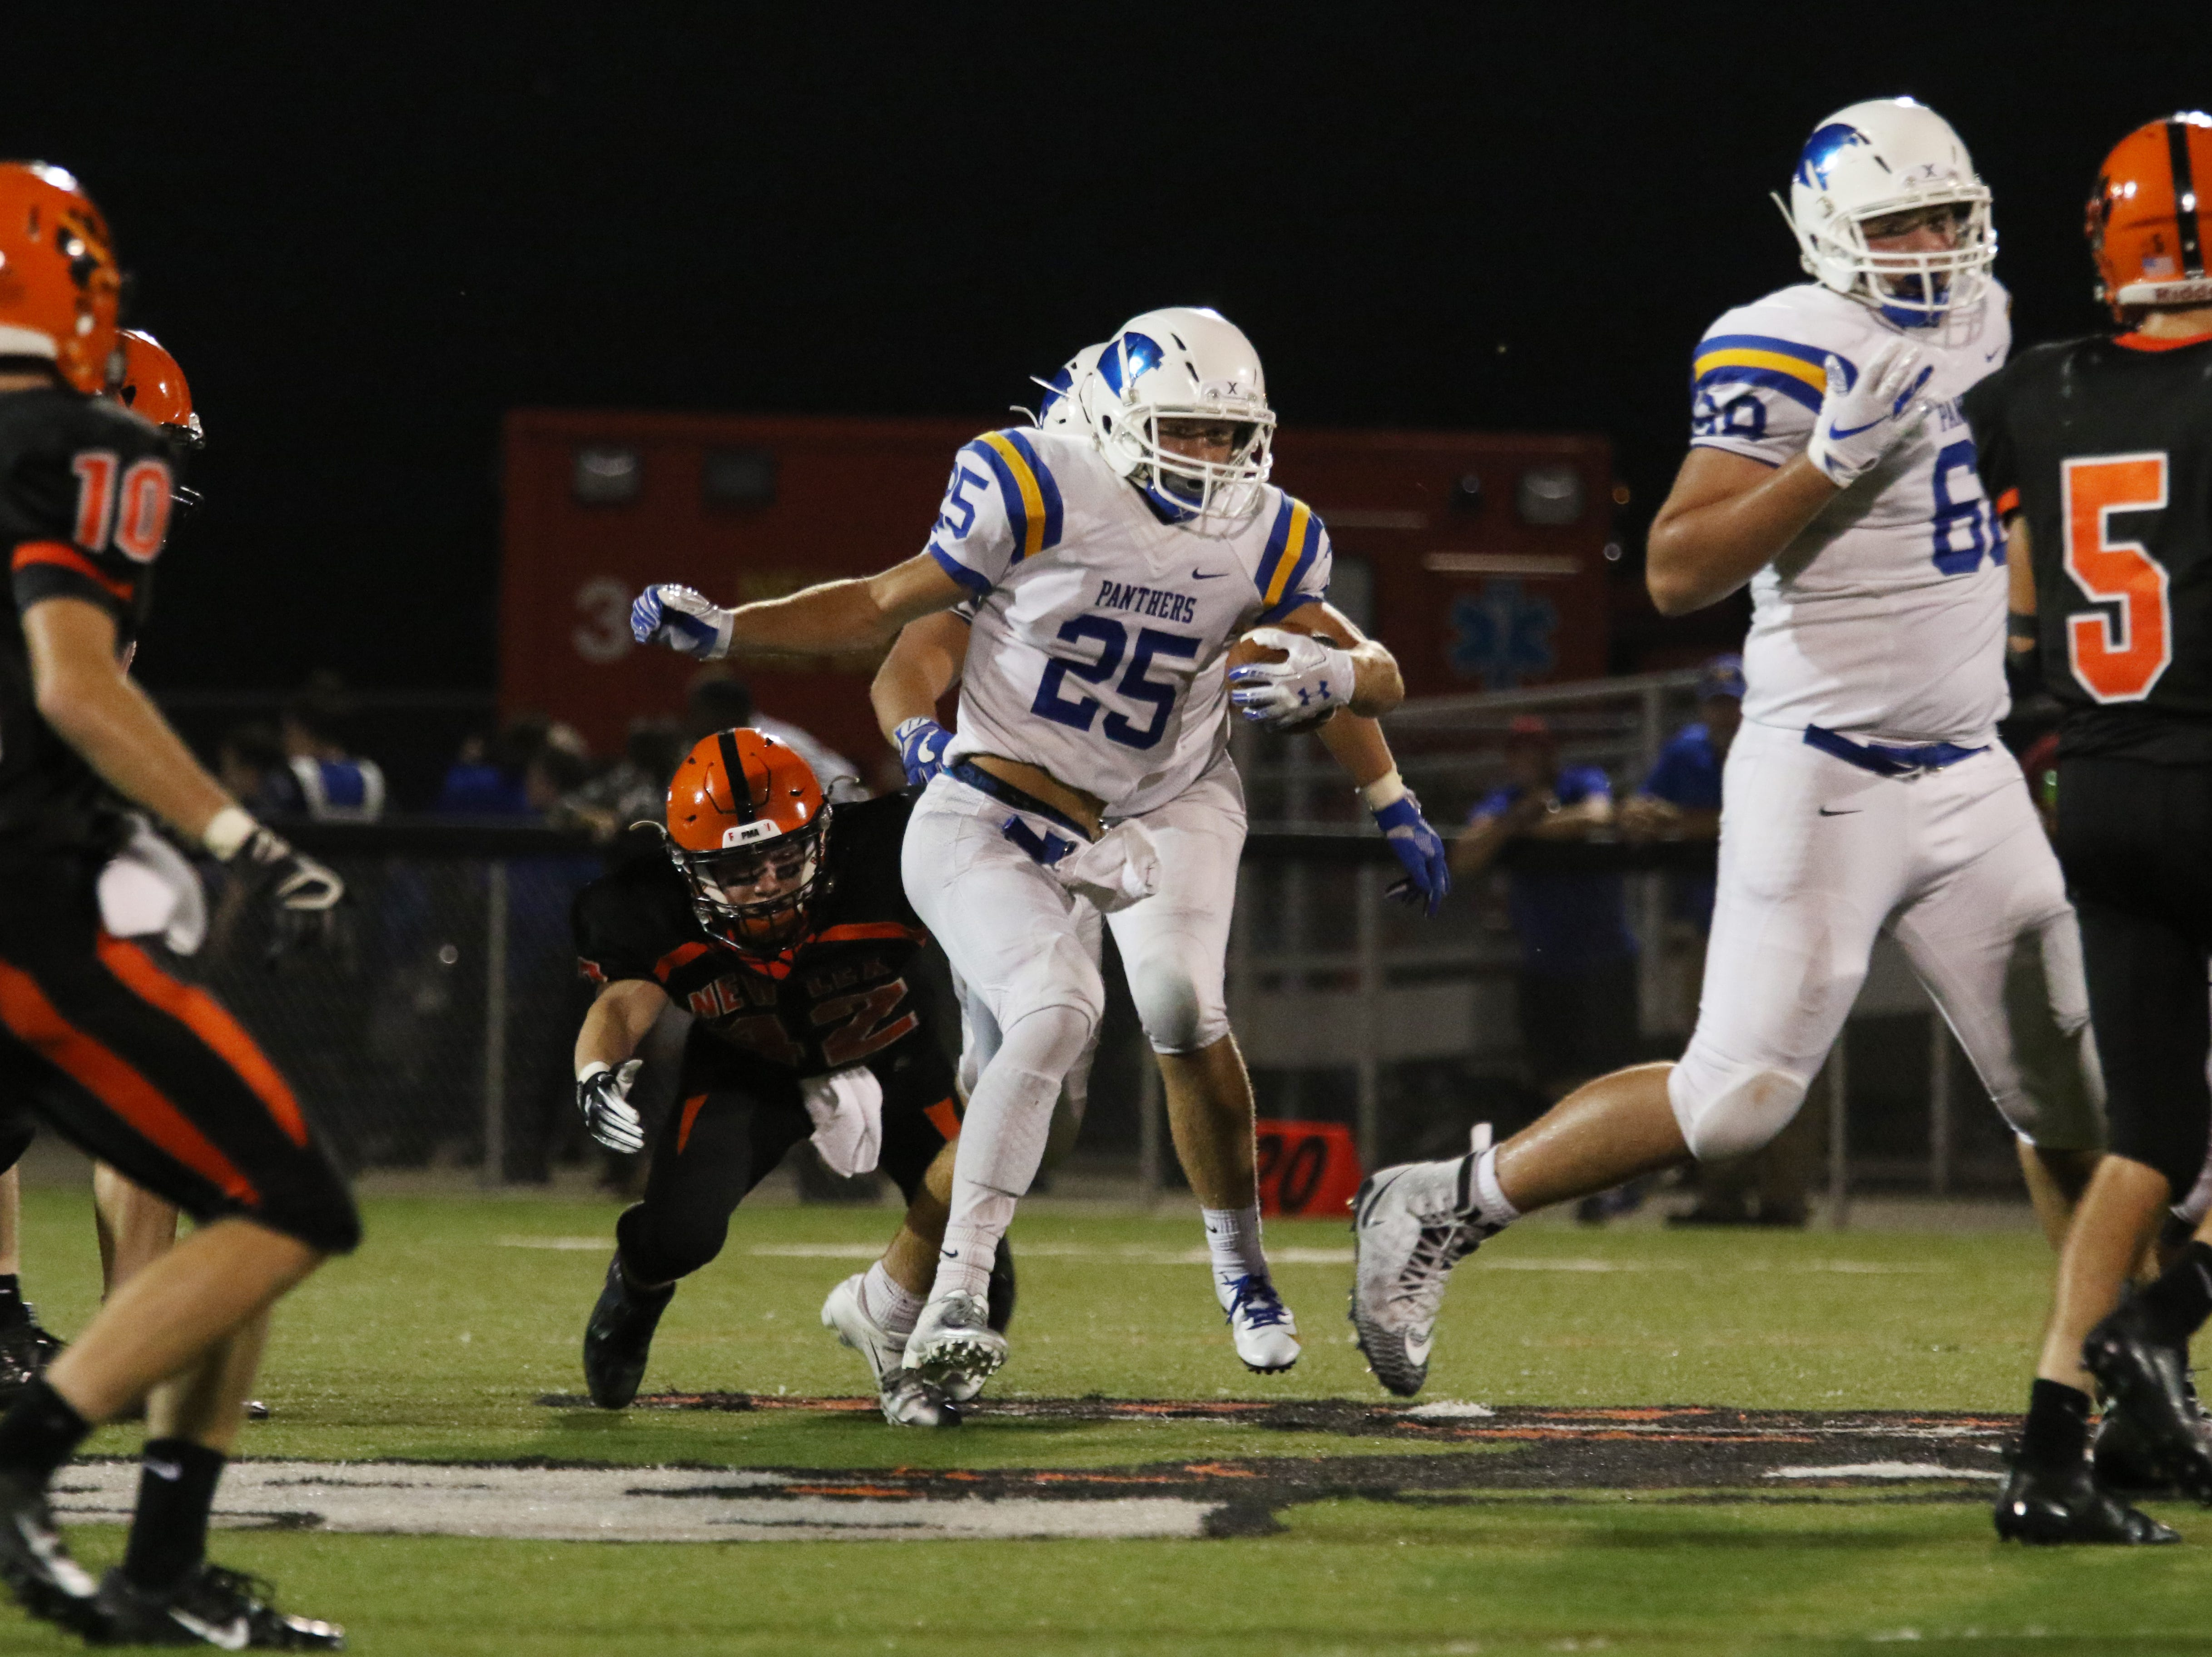 Maysville won the annual battle of the Panthers for the 11th consecutive year, beating New Lexington 20-8.